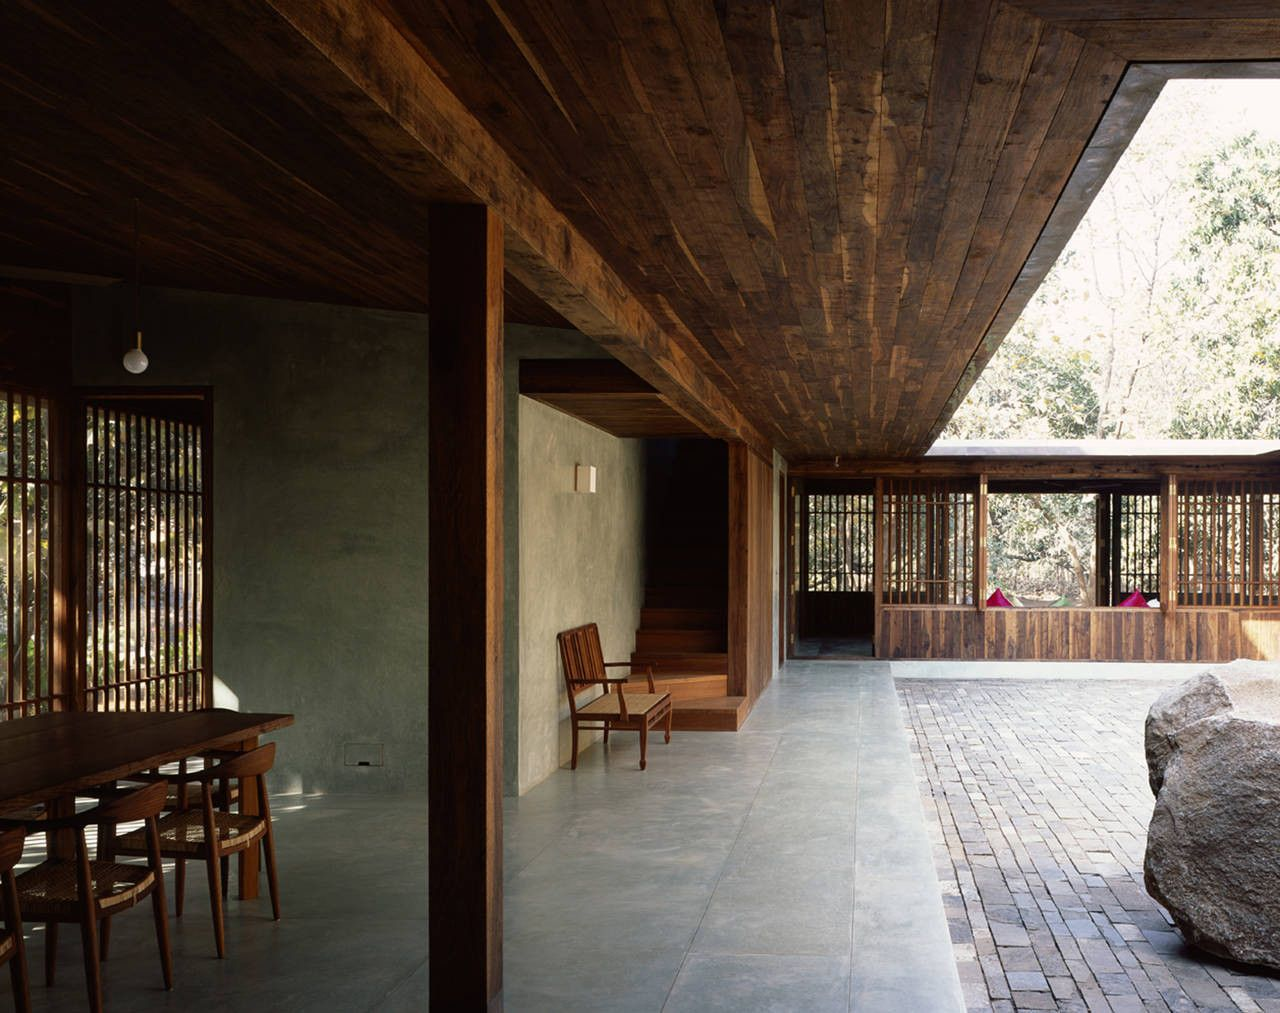 Gallery of Copper House II / Studio Mumbai - 6 | Studio mumbai ...